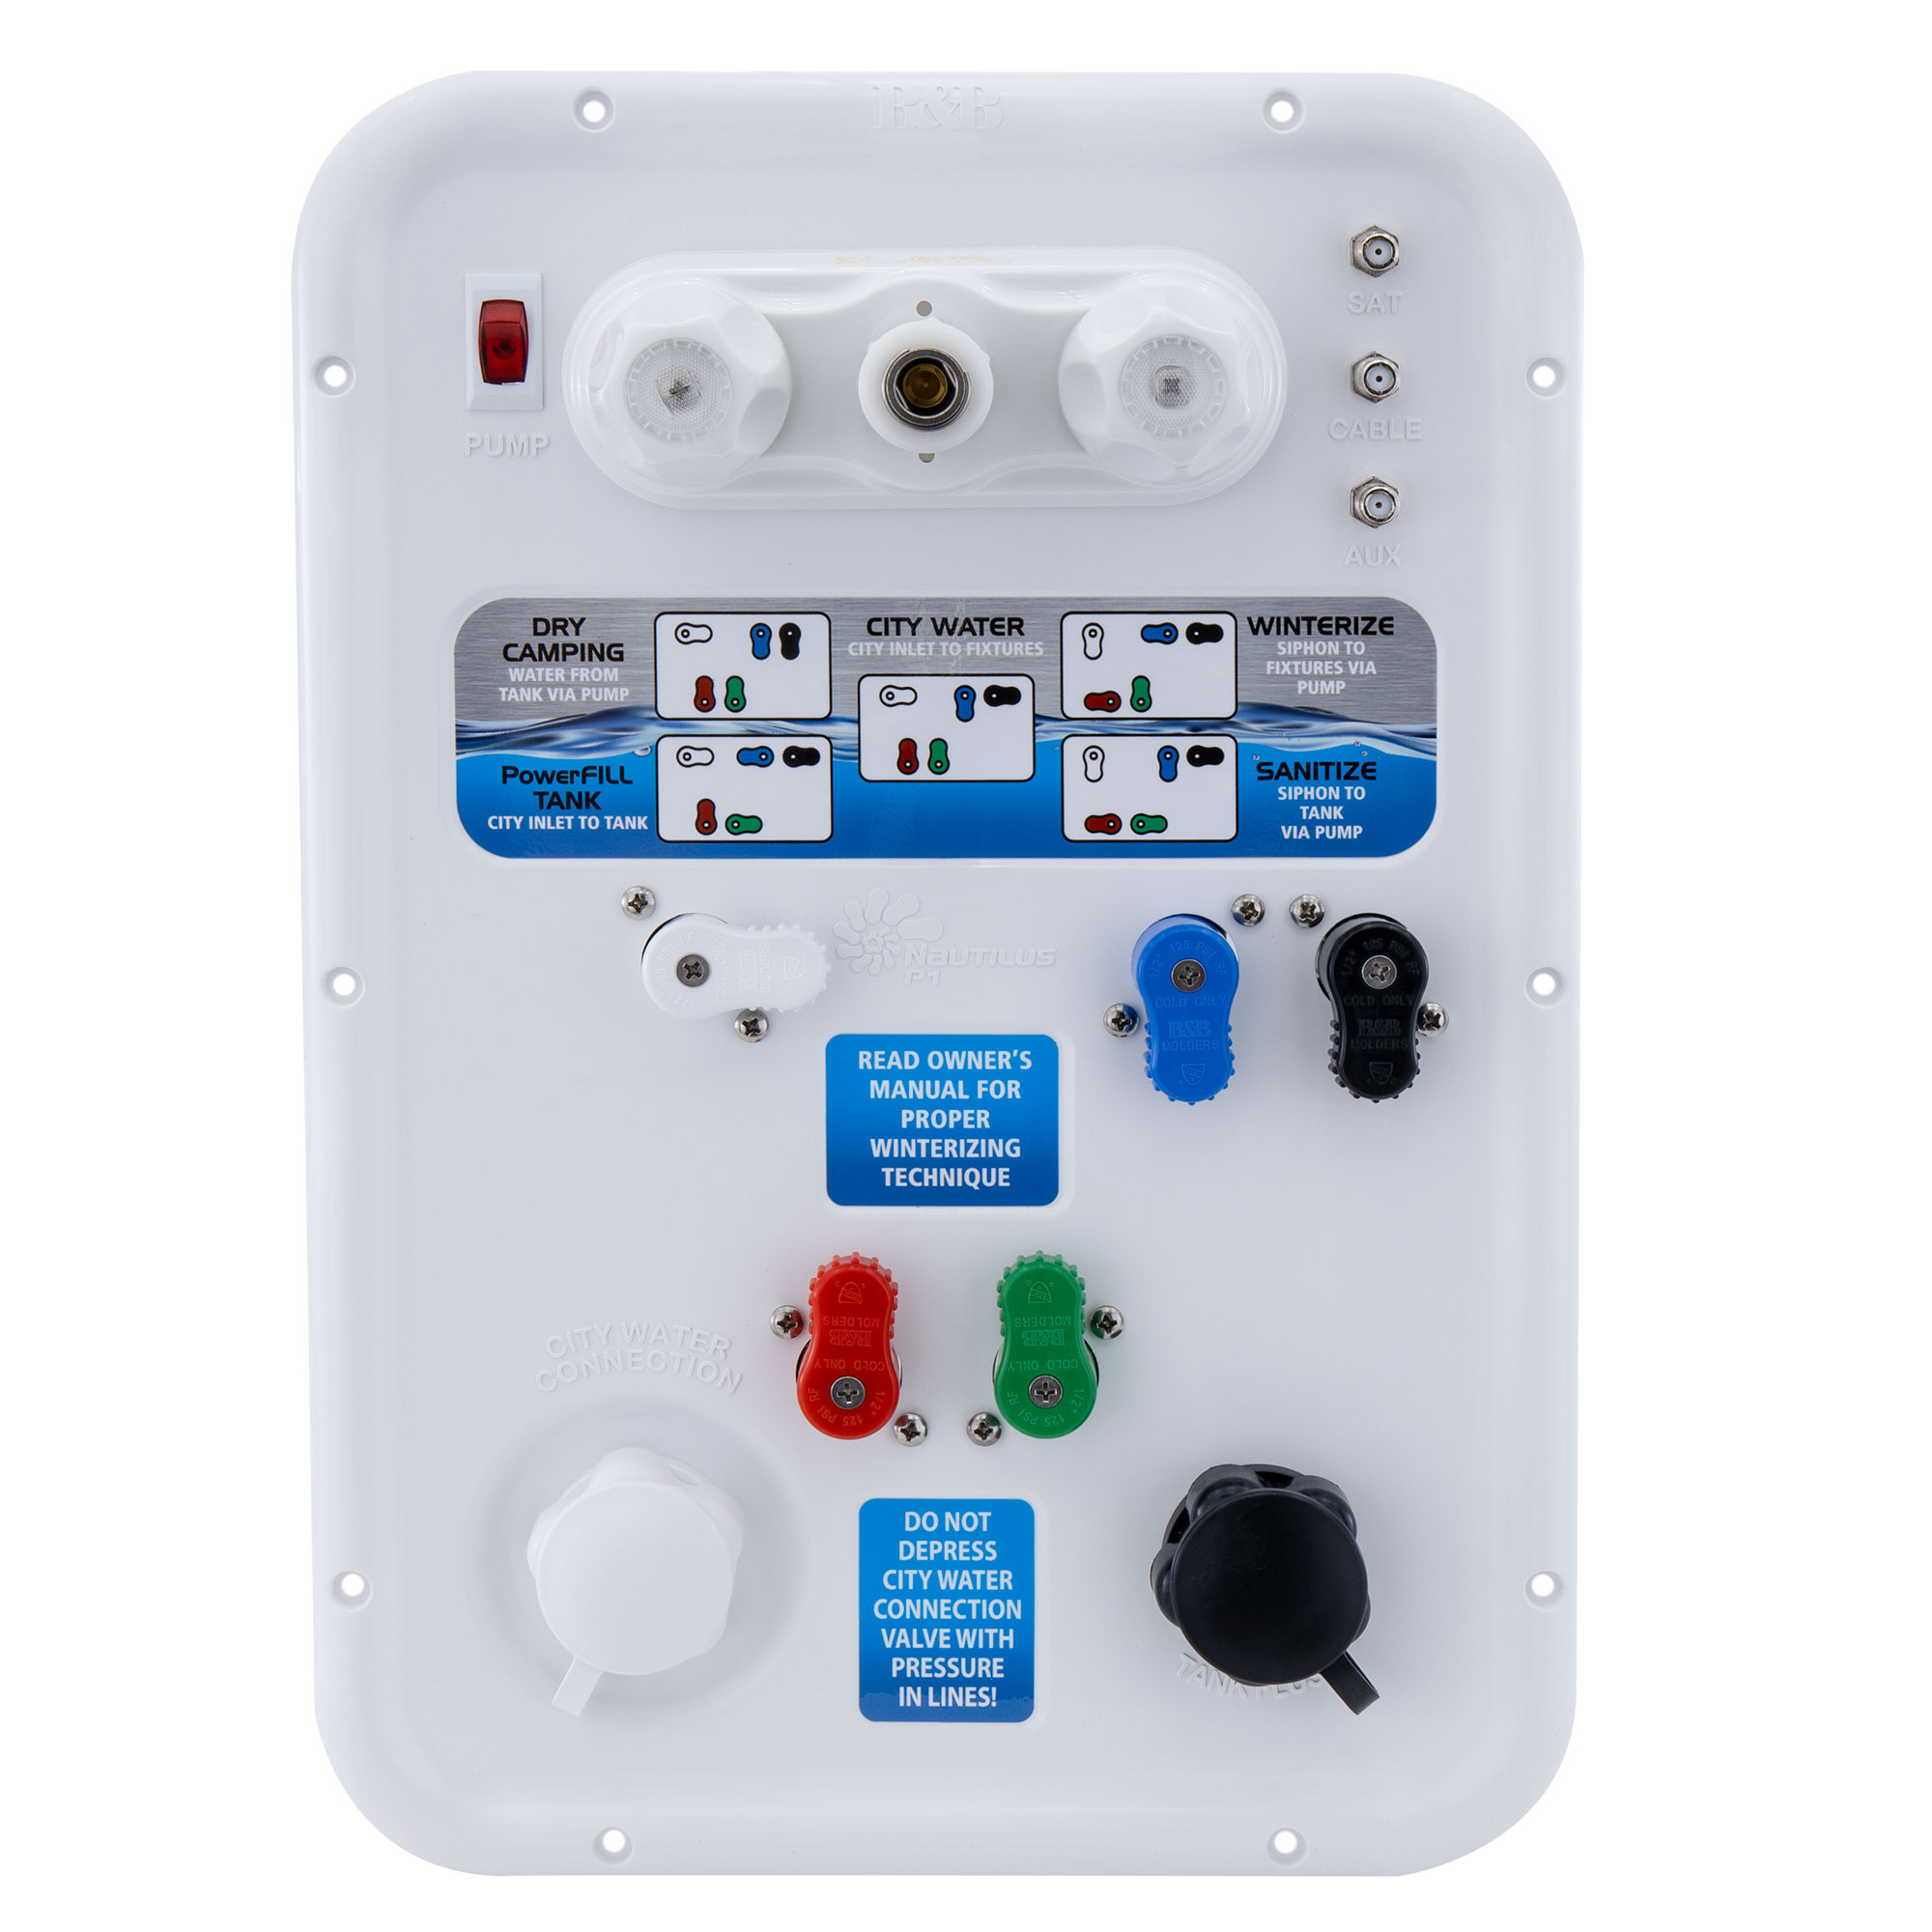 Nautilus P1 RV Water Management Board